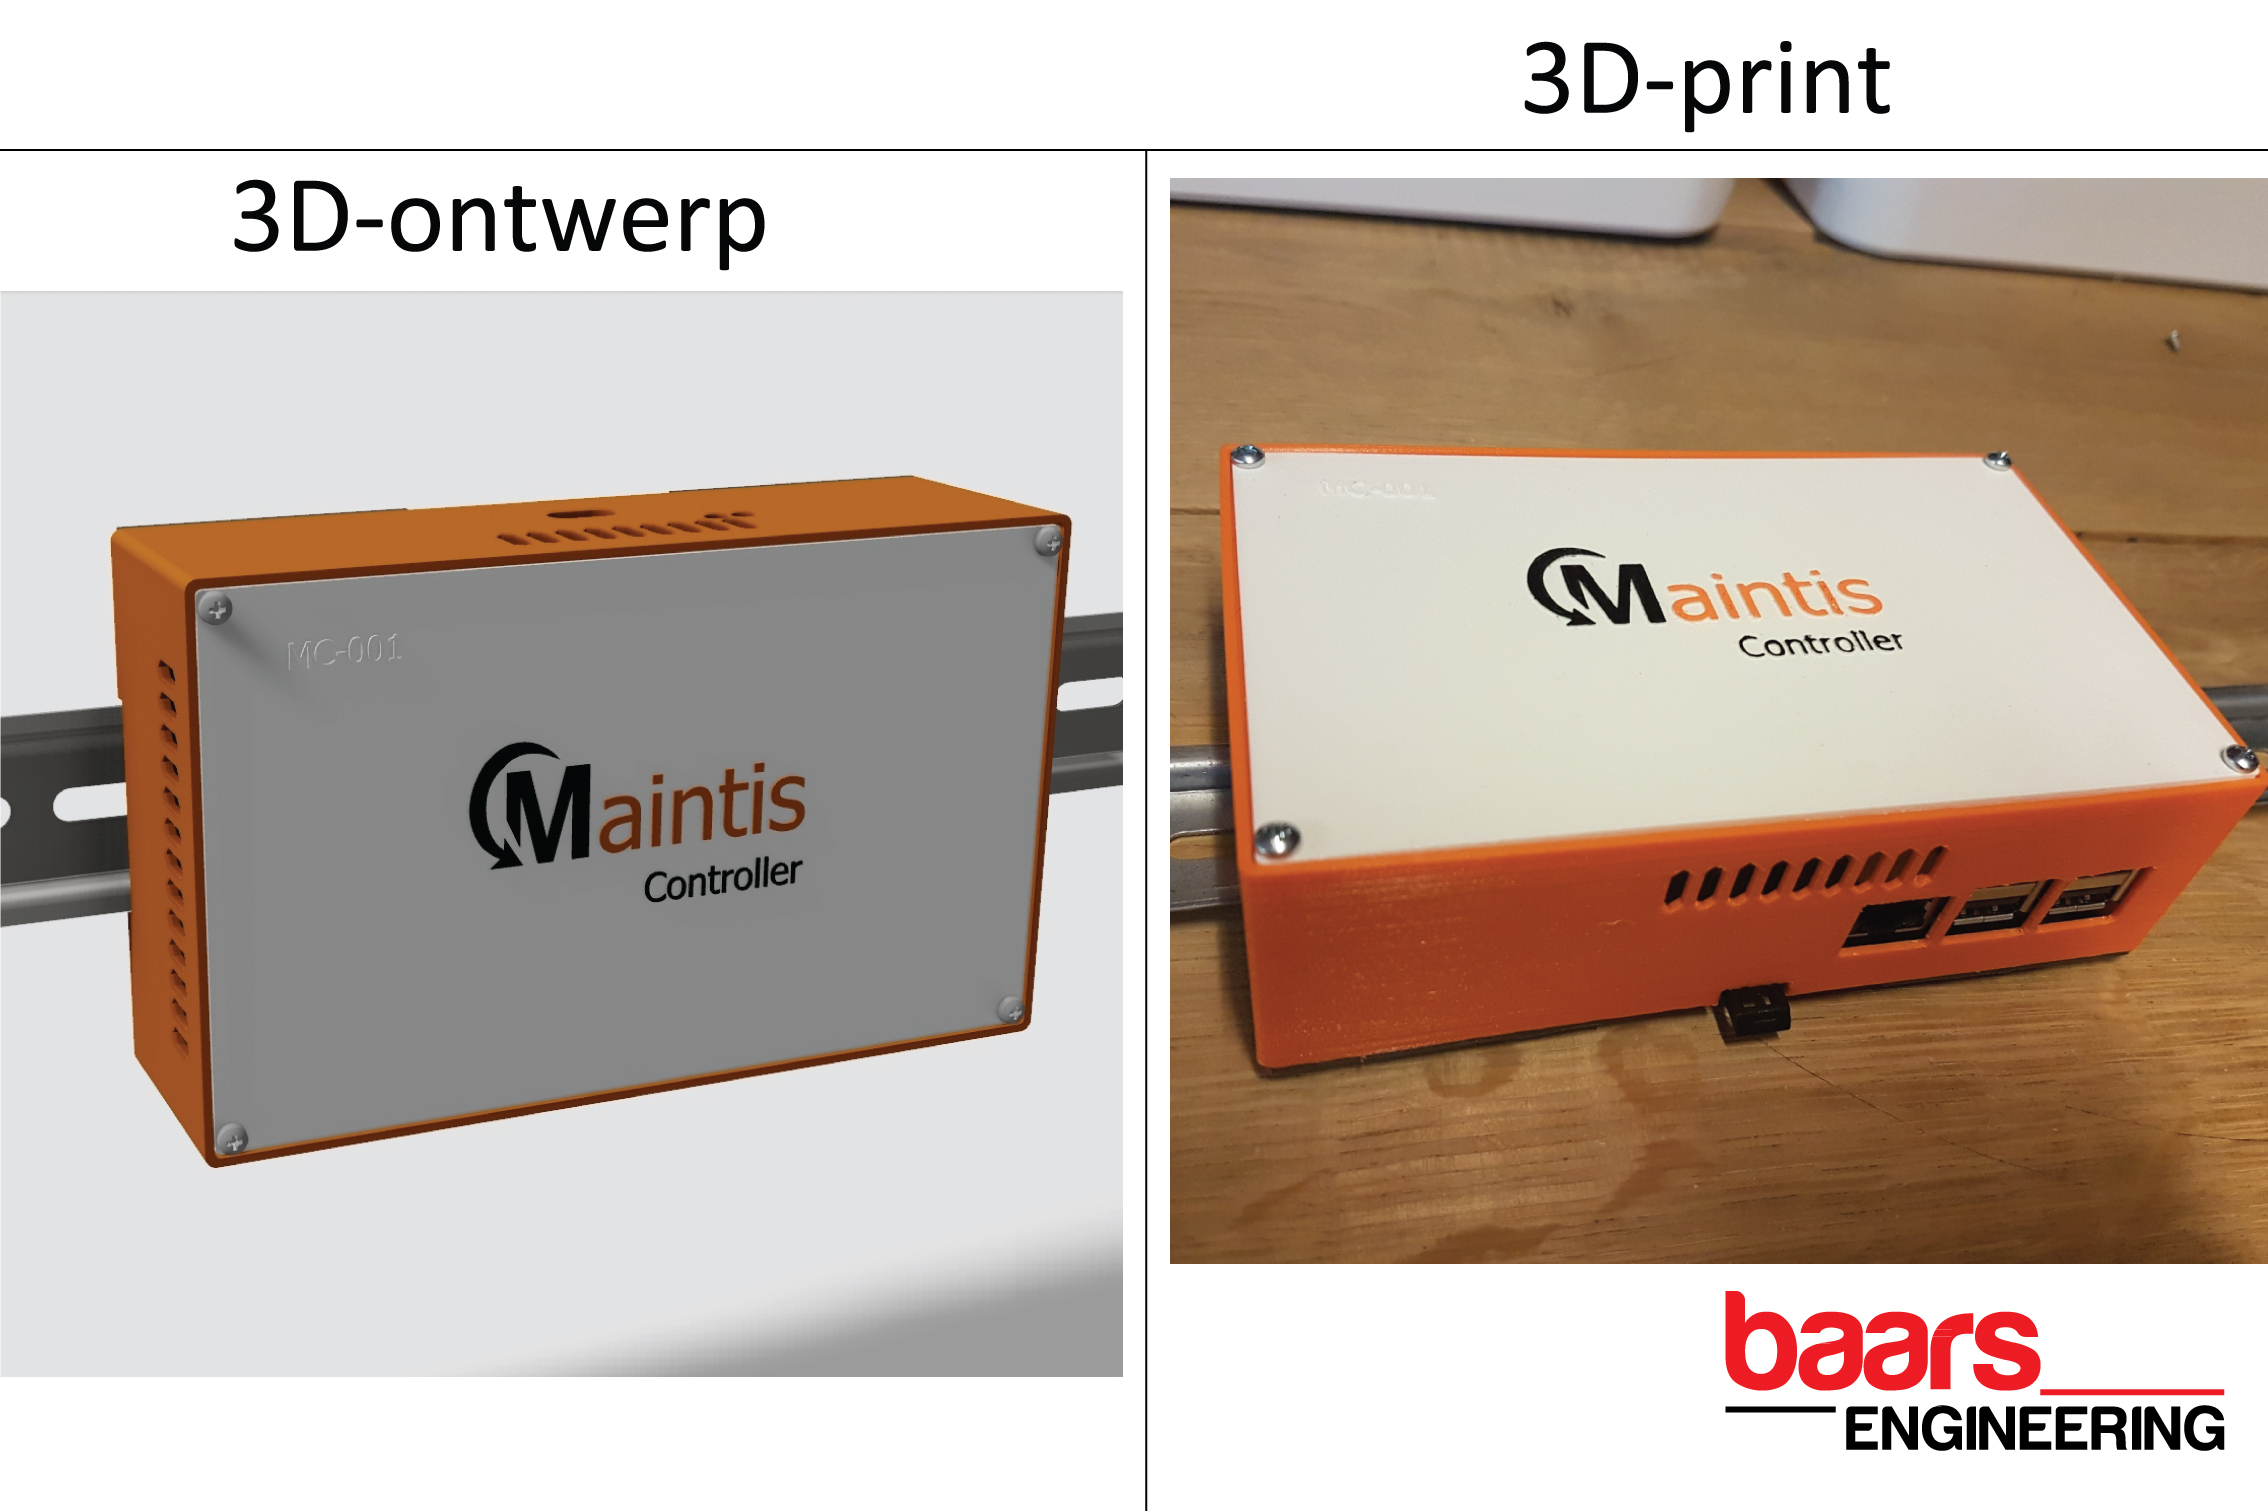 3D-print Smart Controller - Rapid prototyping